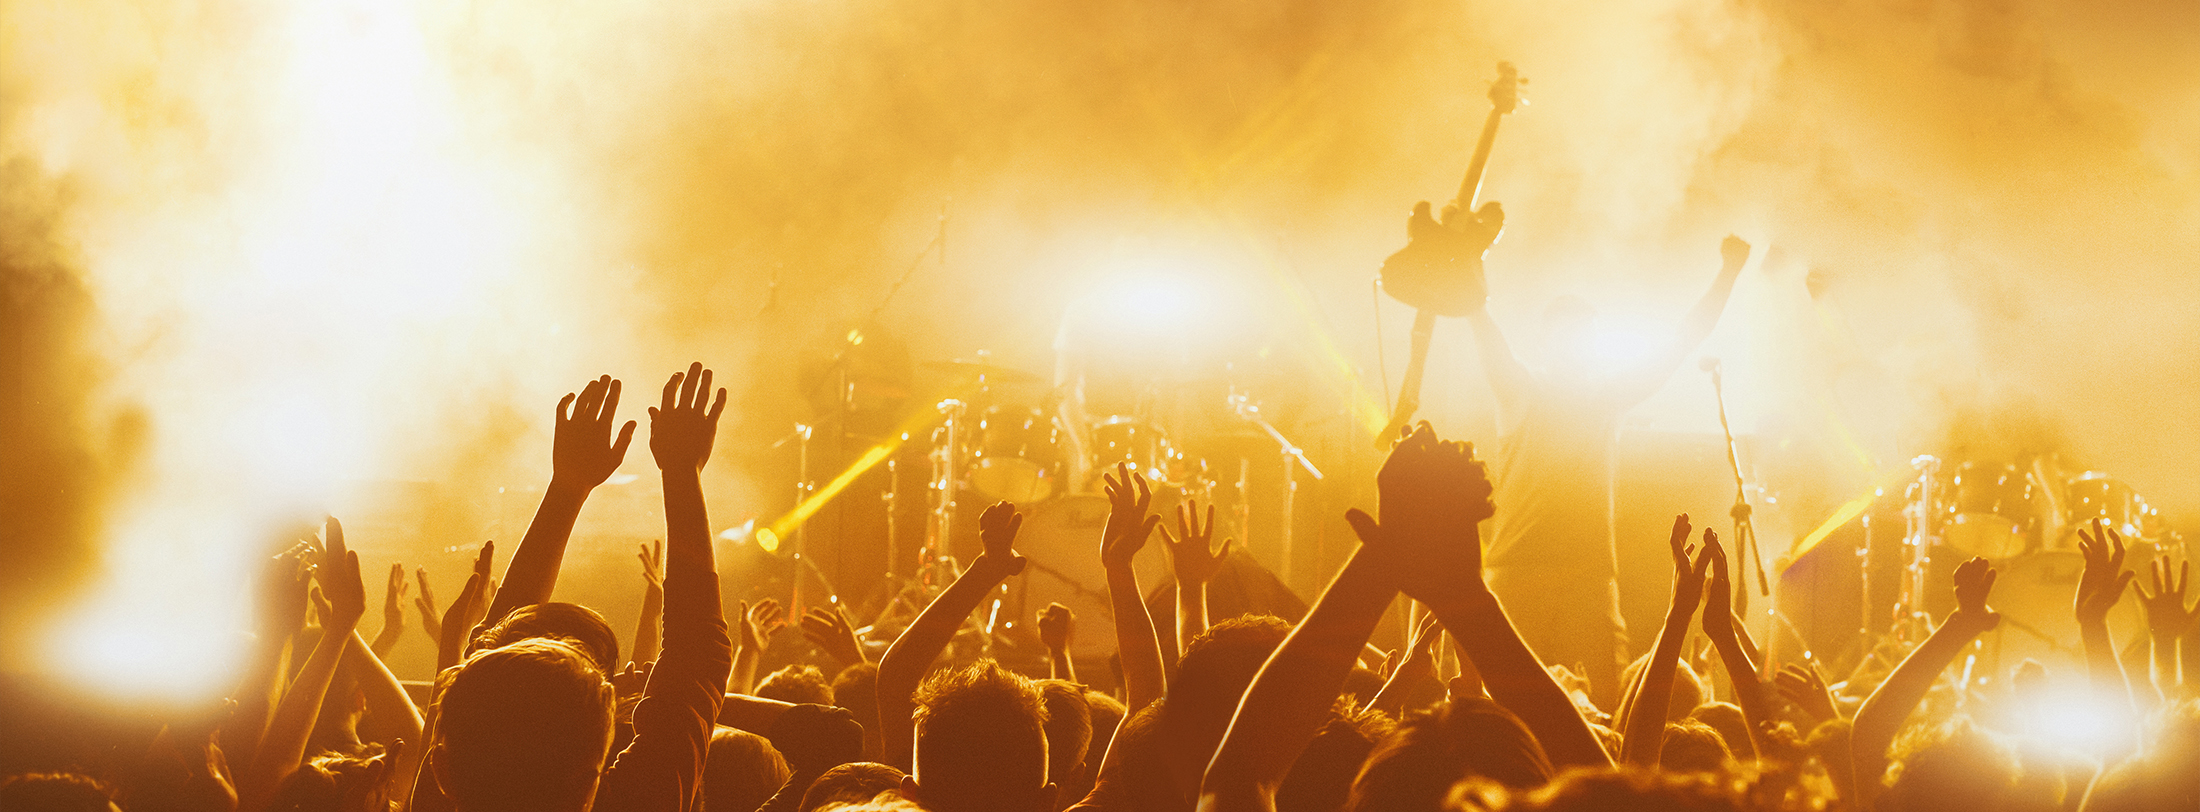 The Agile Product Development Rock Band